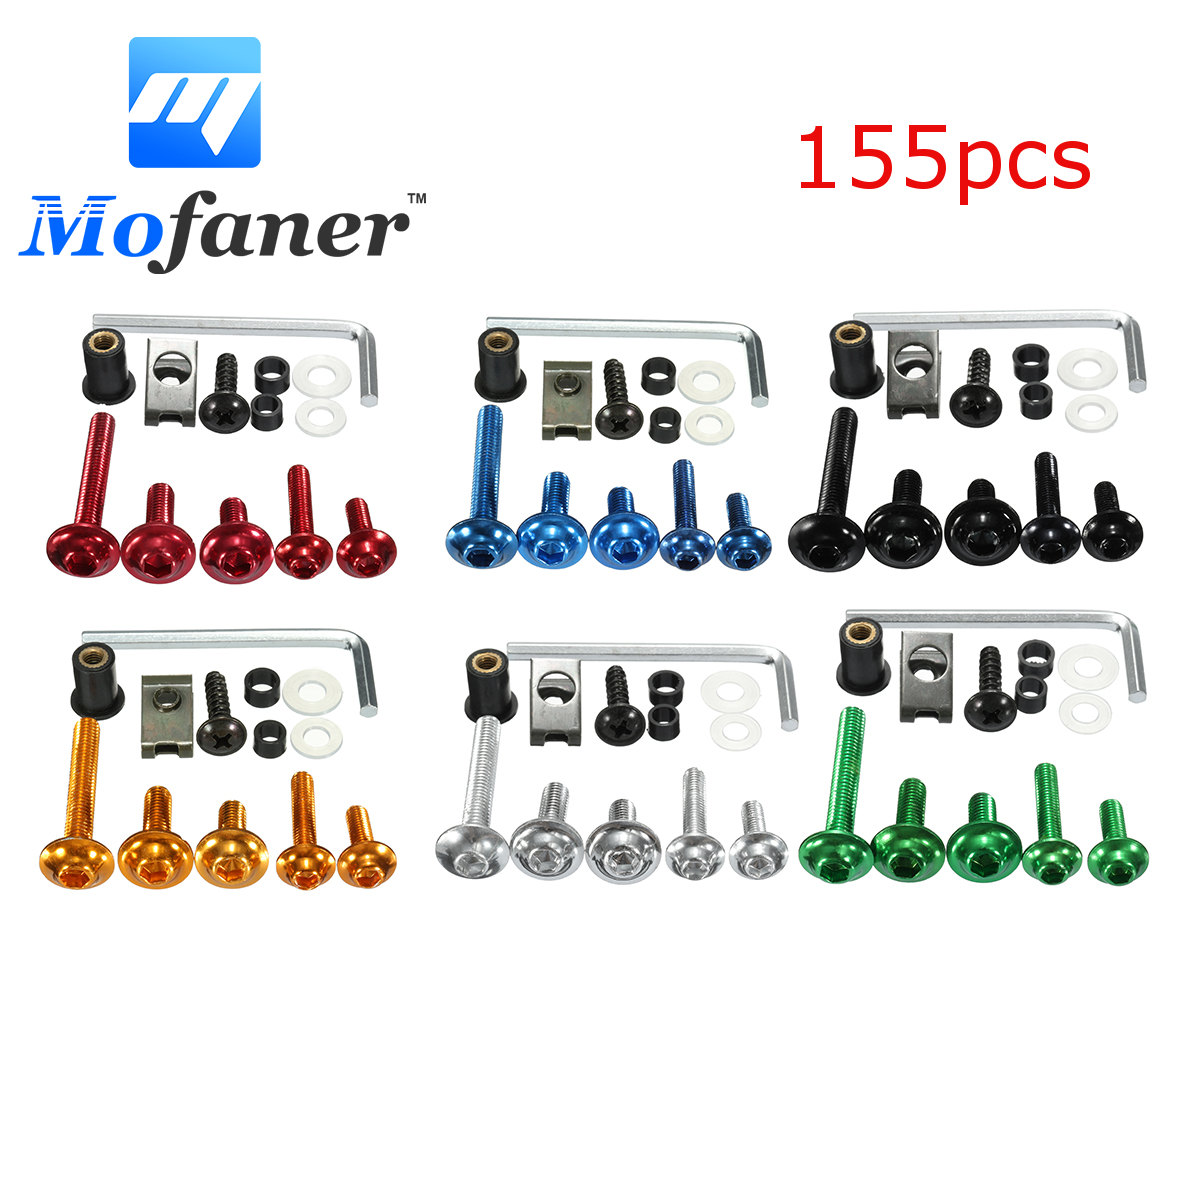 155 Pcs Motorcycle Sportbike Windscreen Fairing Bolts Kit Fastener Clips Screws Black Red Blue Green Silver